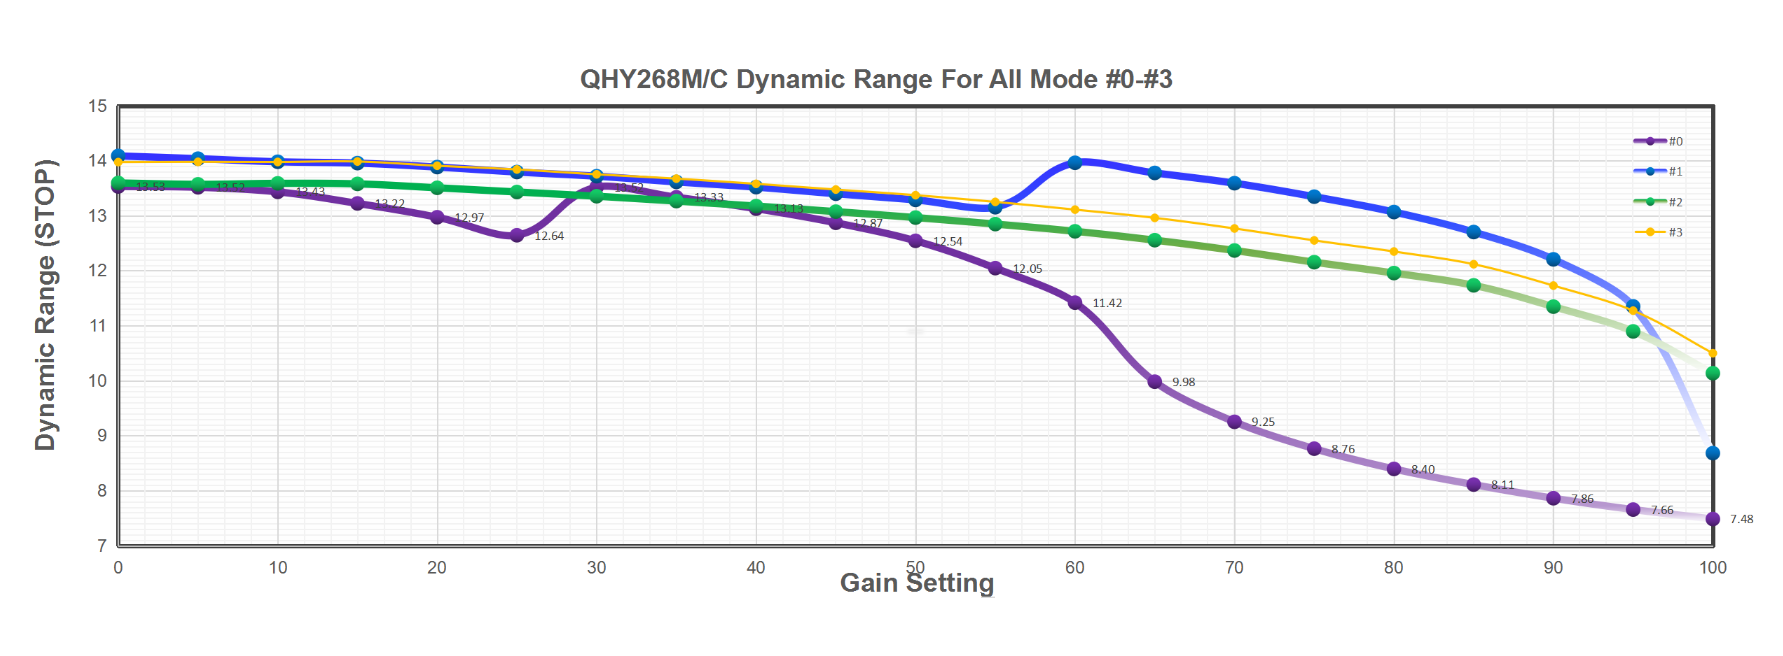 QHY268M/C Dynamic Range For All Mode